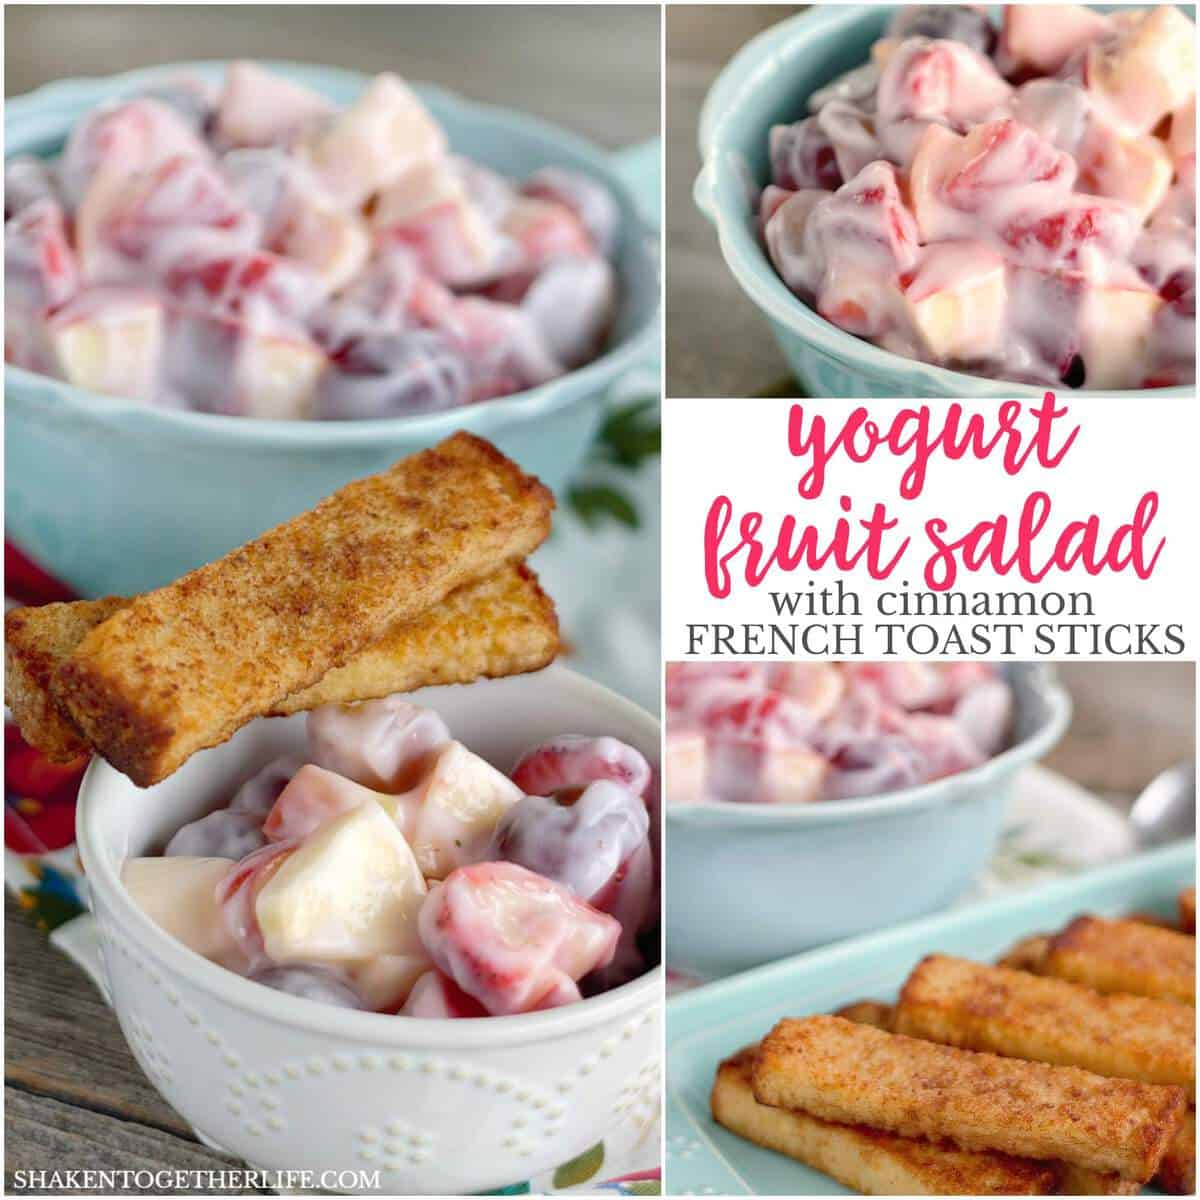 Easy Yogurt Fruit Salad with Cinnamon French Toast Sticks can be done in 10 minutes - brunch is served!